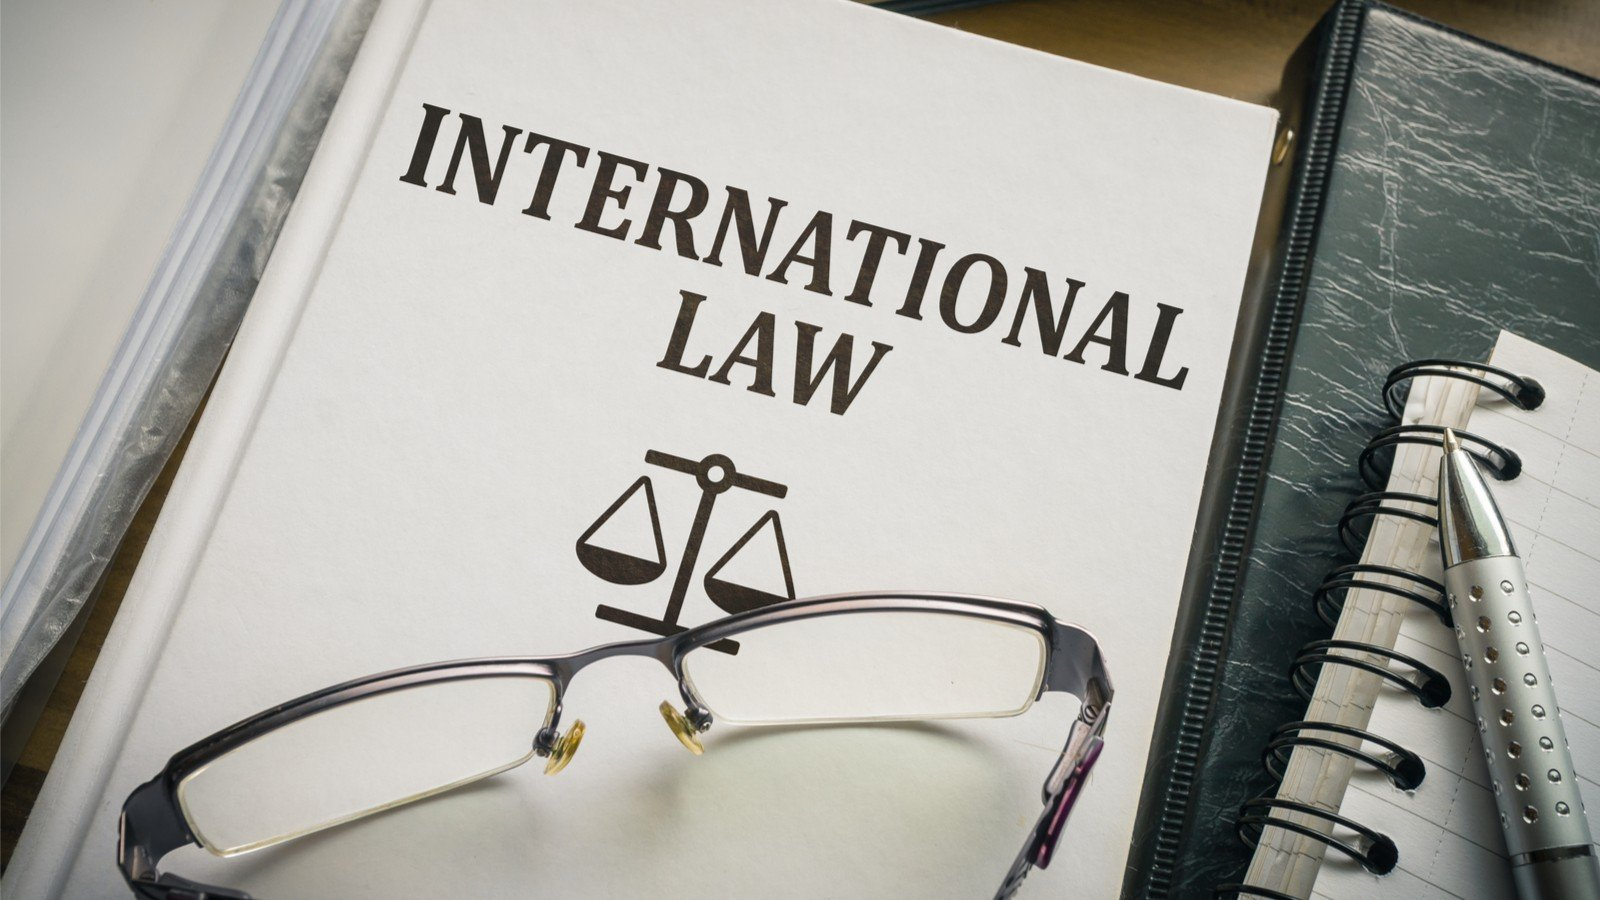 JURIDISK international-lawyer